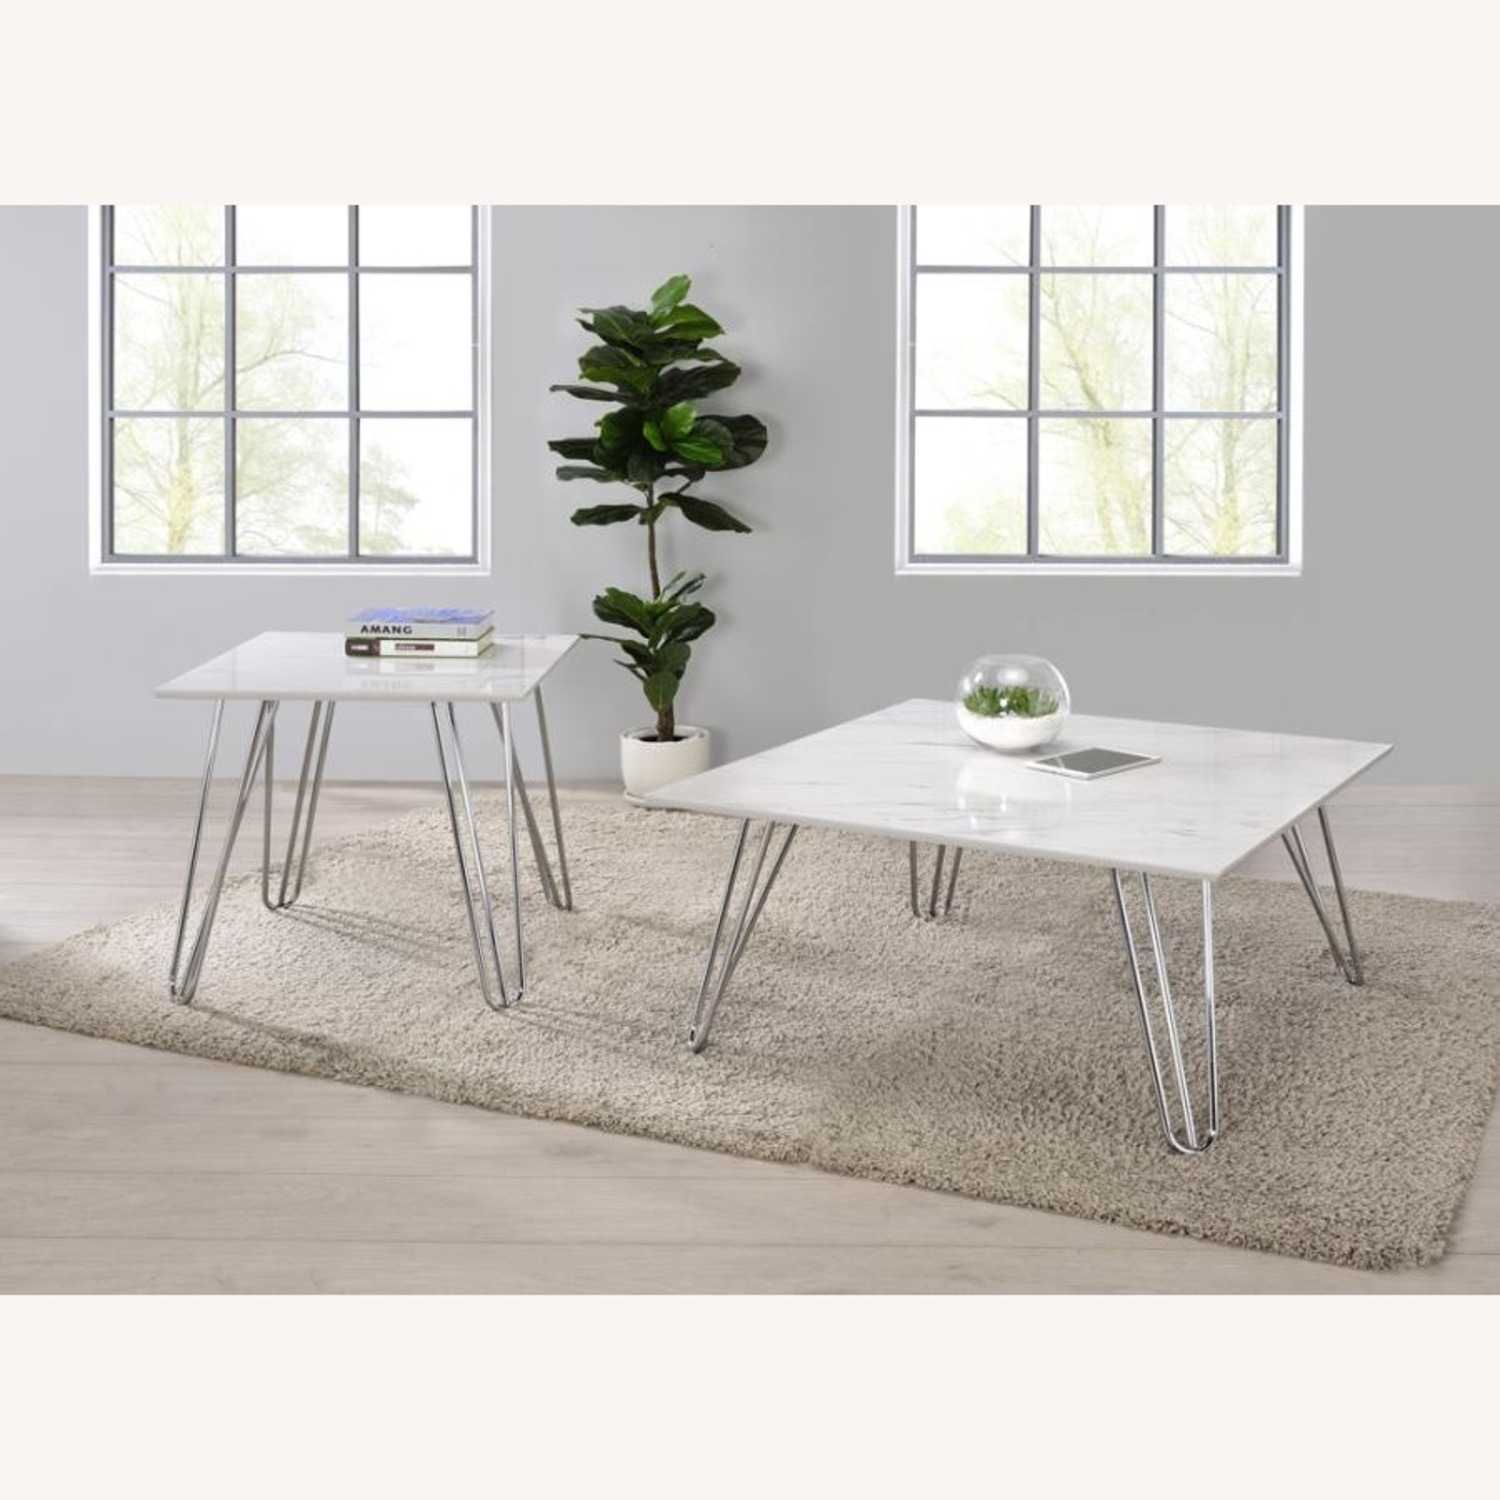 End Table In White Faux Marble Finish - image-2